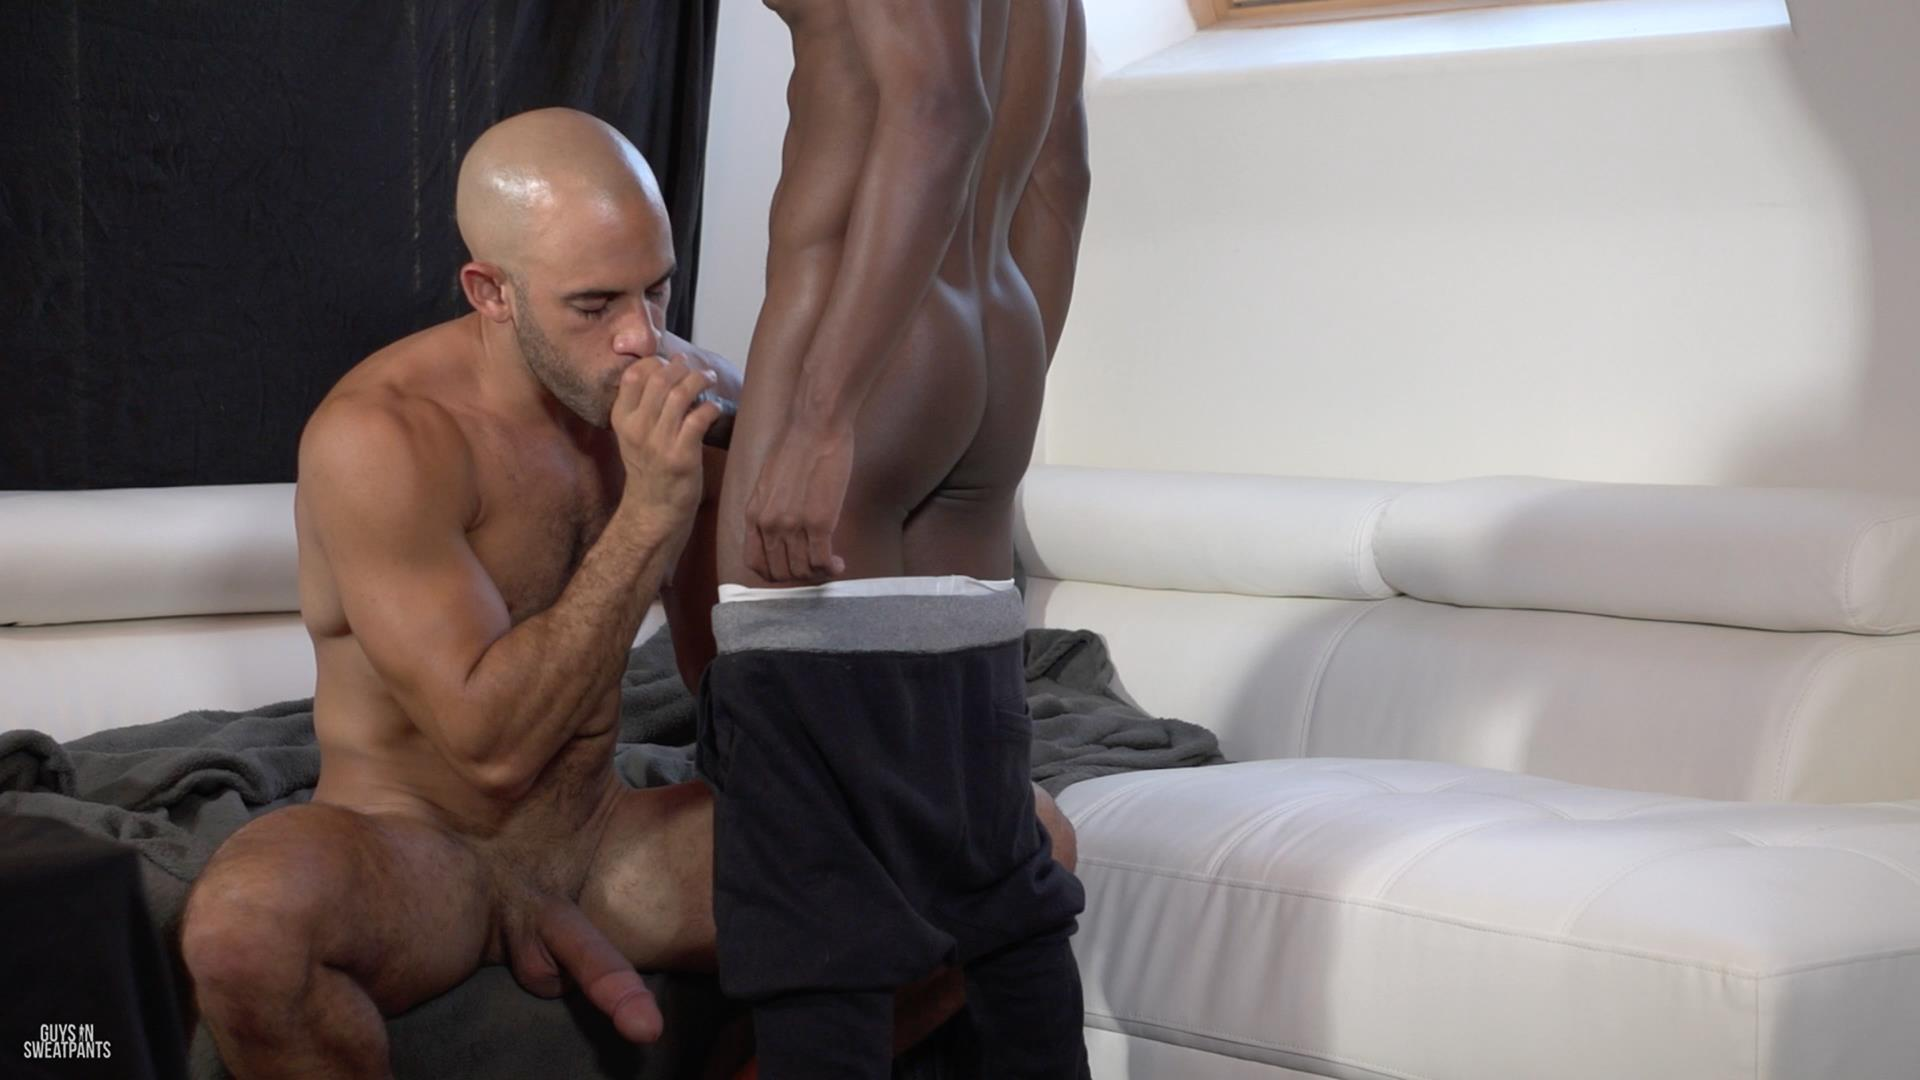 Guys-in-Sweatpants-Austin-Wilde-and-Liam-Cyber-Bareback-Interracial-Sex-Amateur-Gay-Porn-01 Austin Wilde Takes A Big Black Bareback Cock Up The Ass